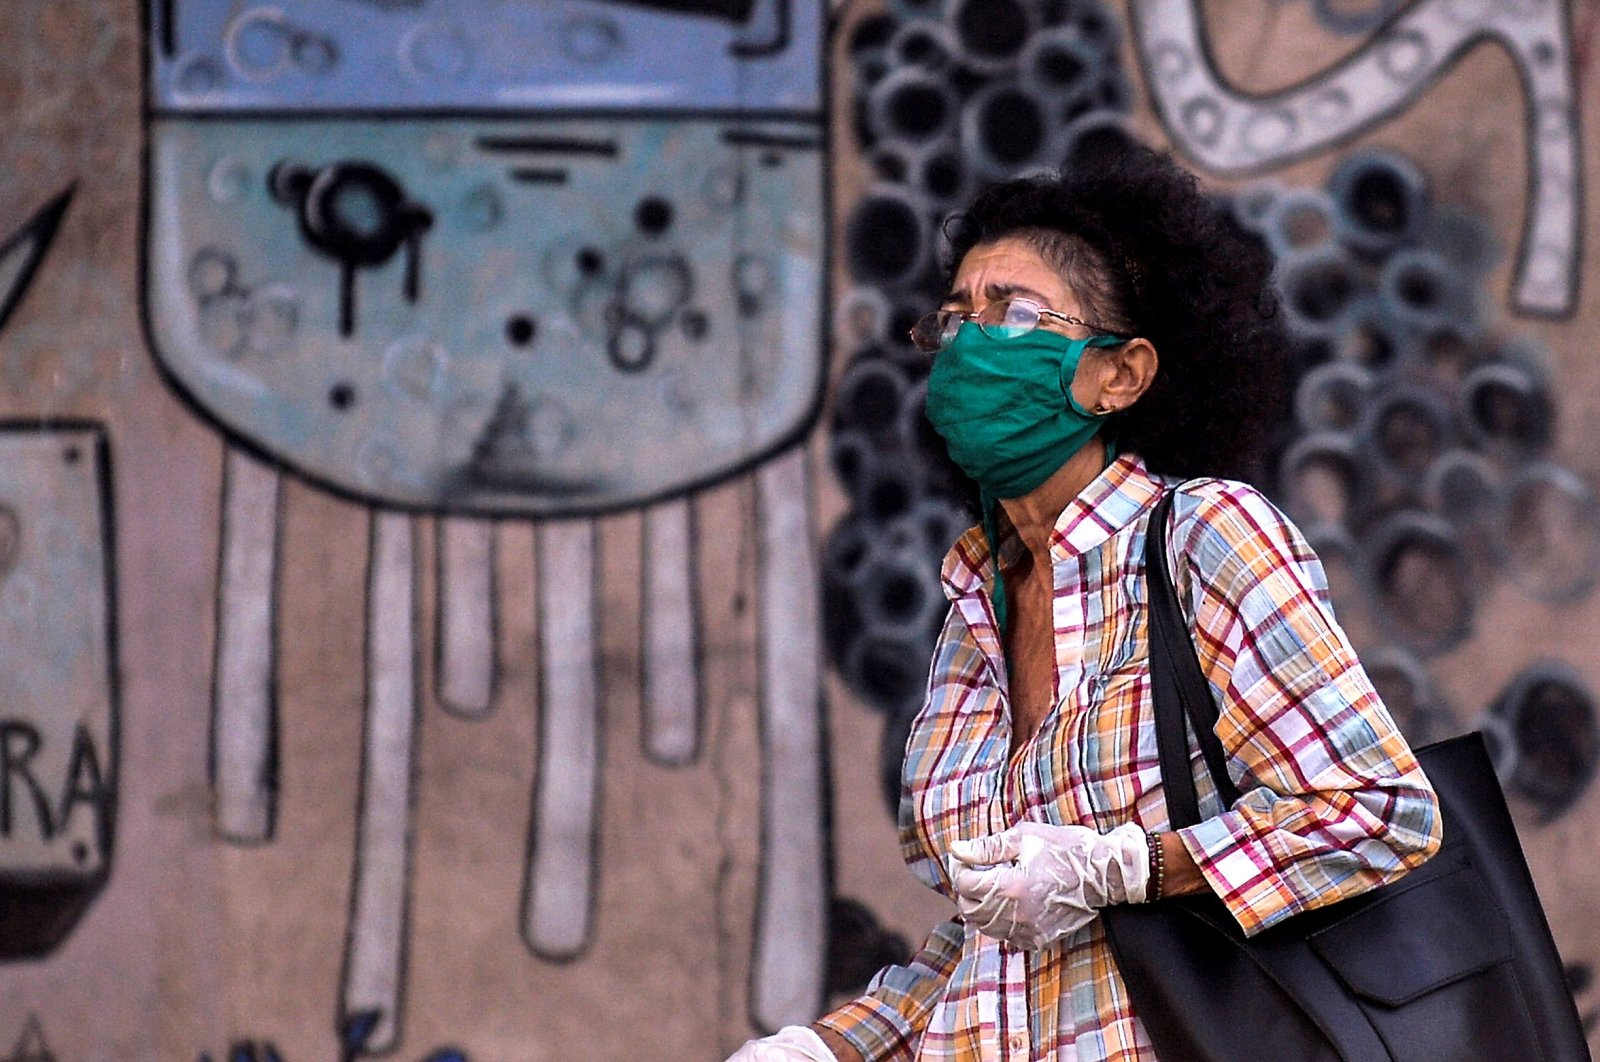 A woman wearing a face mask and gloves walks along a street in Havana, Cuba, May 25, 2020. (AFP Photo)